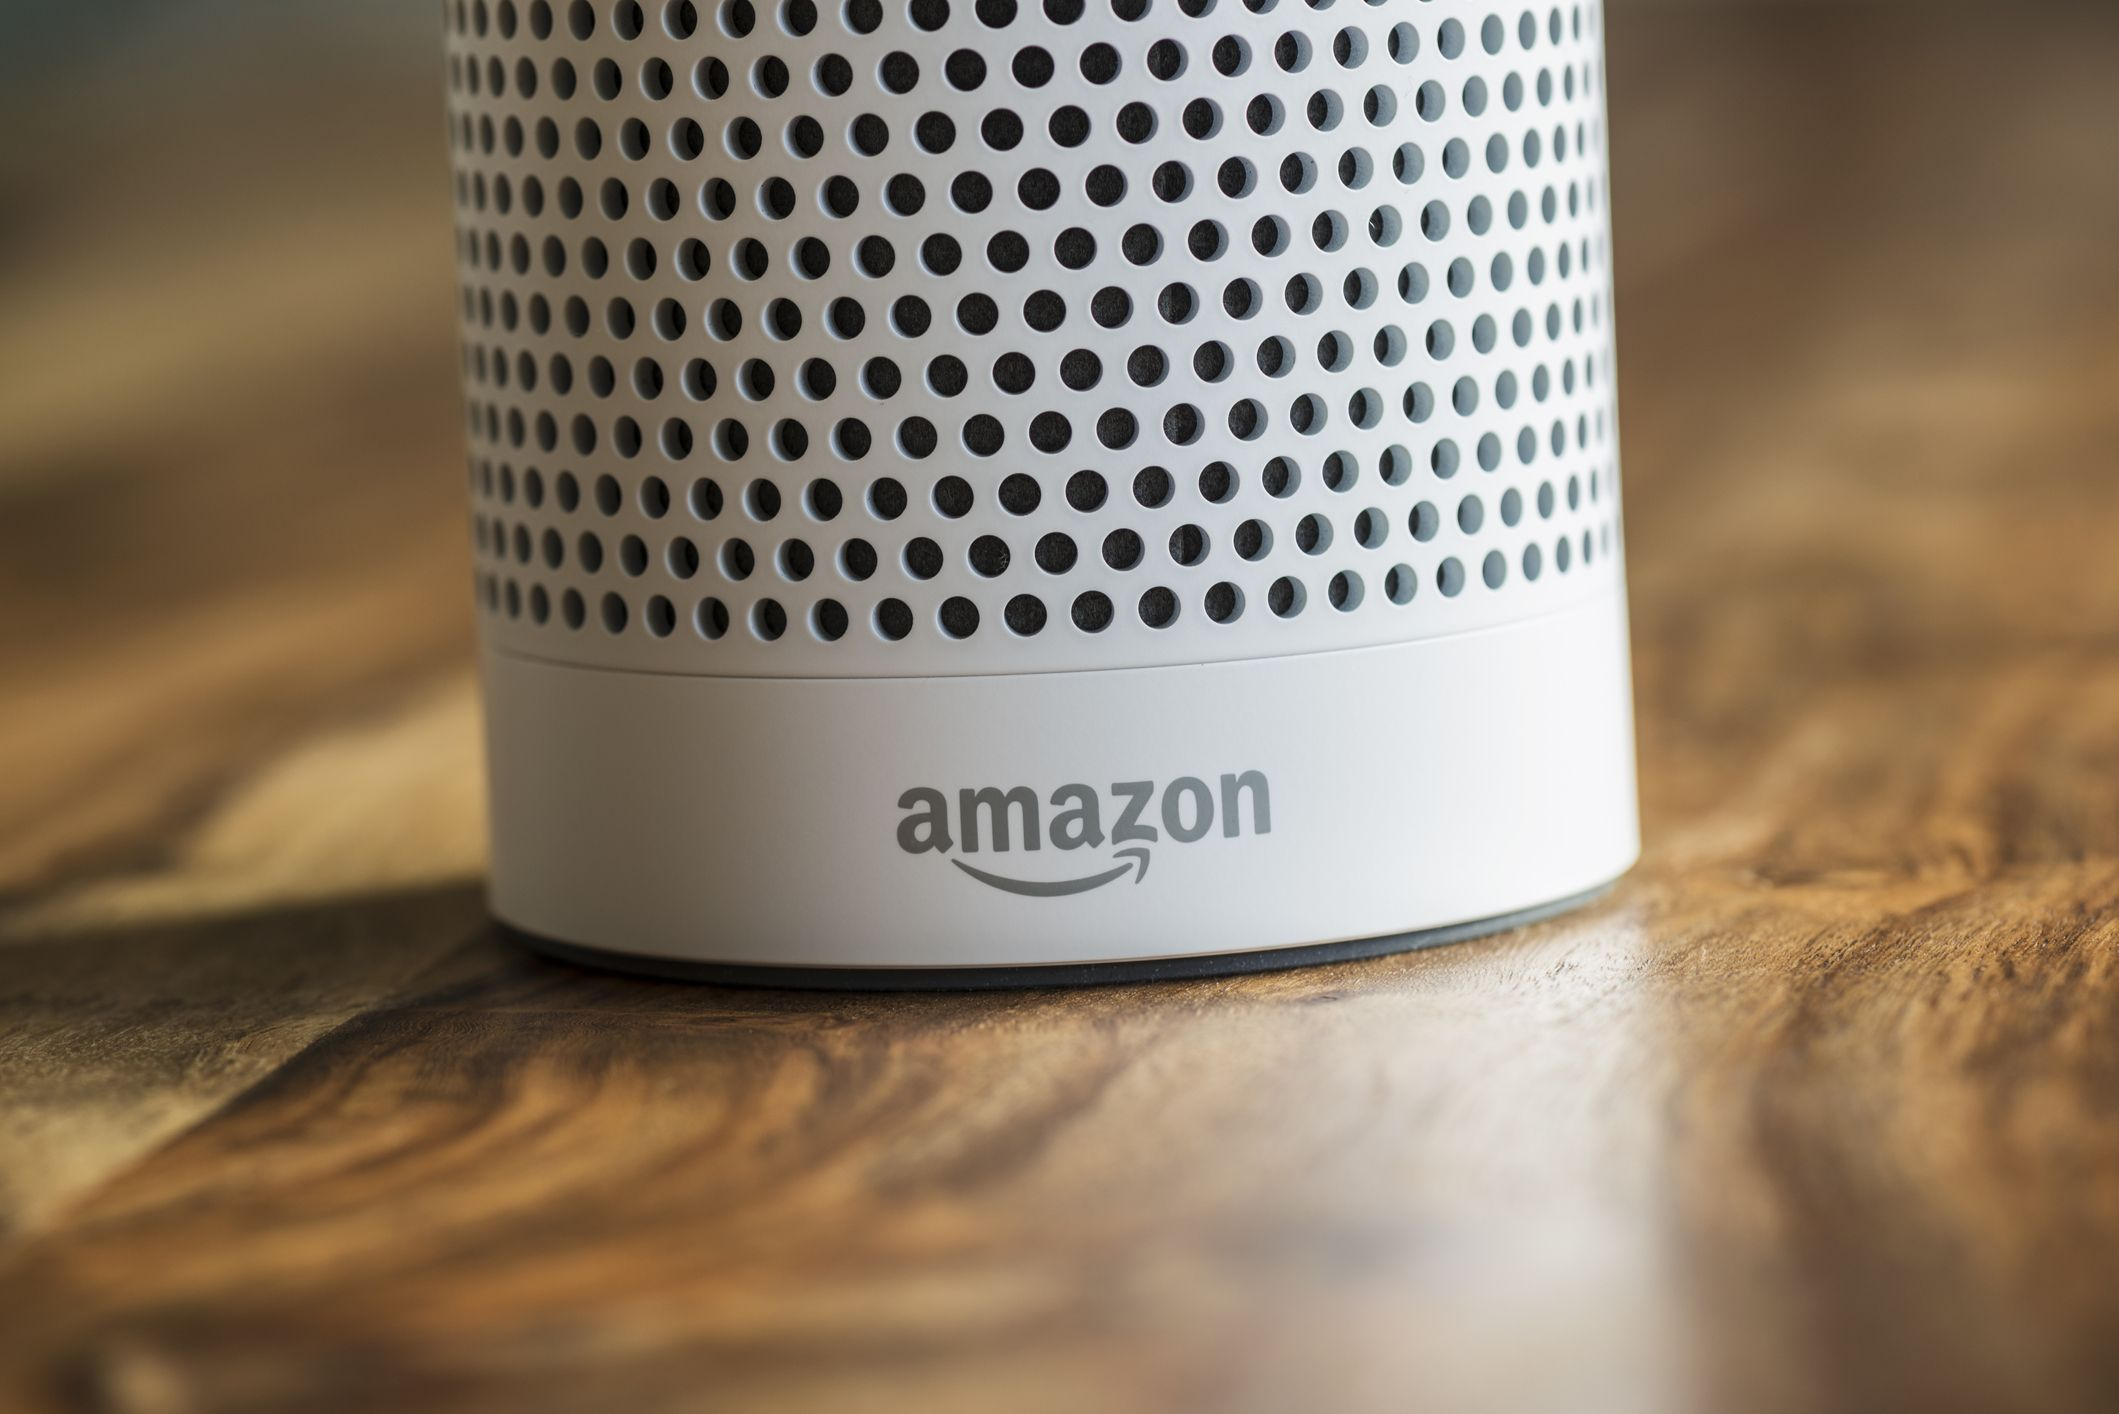 Amazon and the NHS' Collaboration Means You'll Be Able to Ask Alexa for Health Guidance